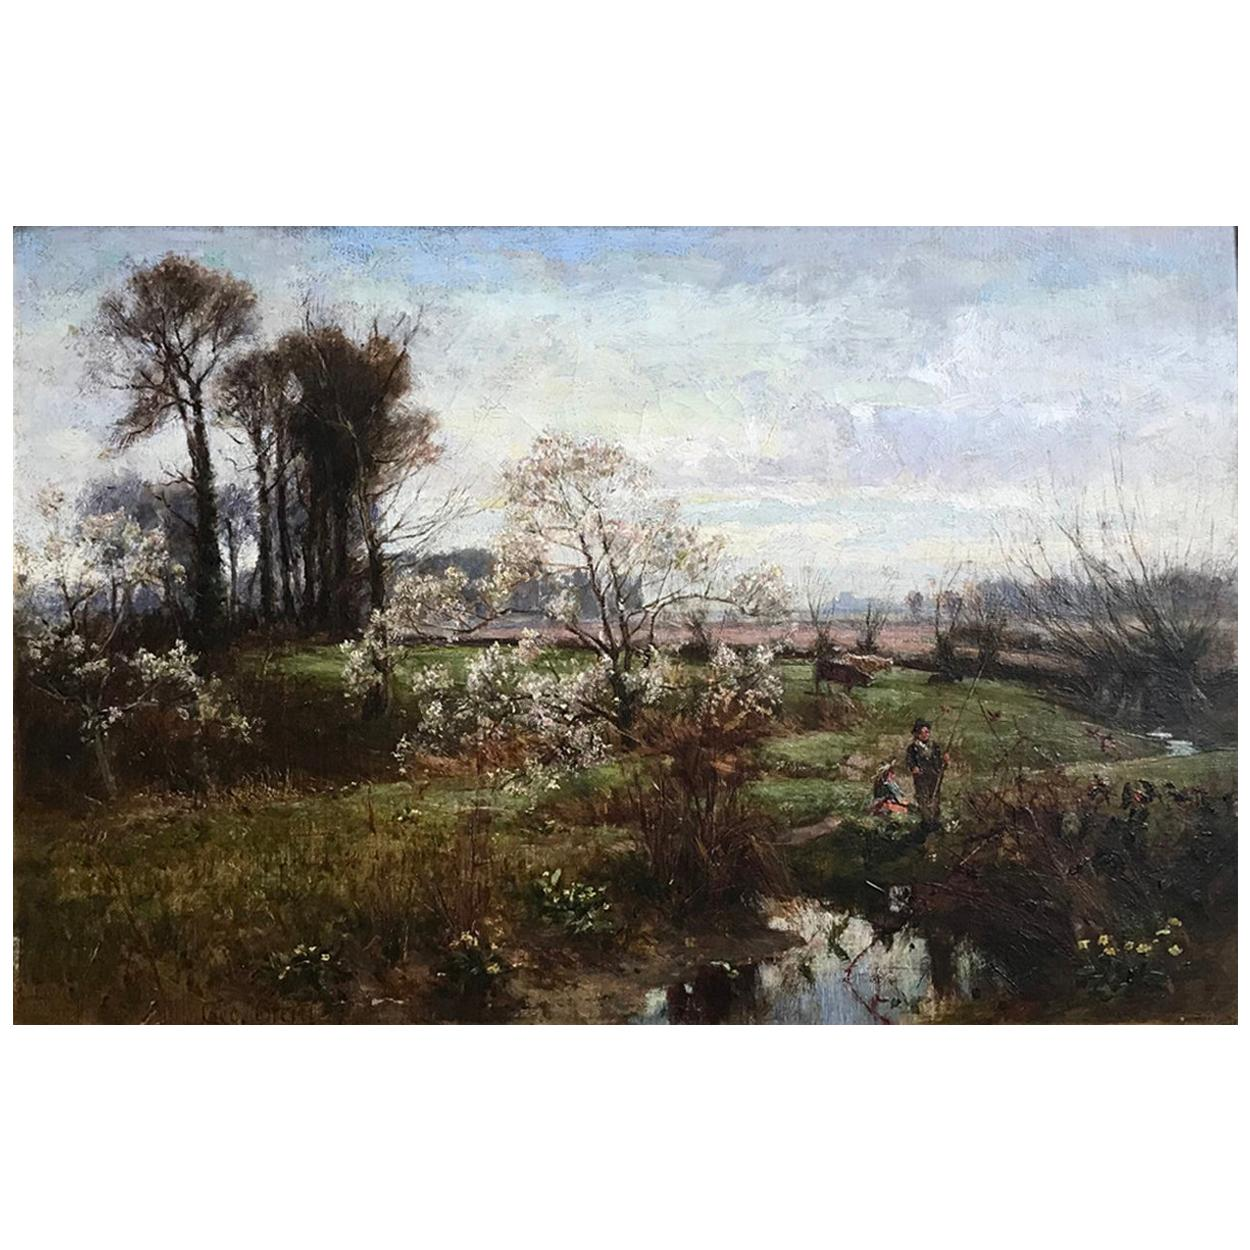 George Gray, Oil on Canvas, Rural Scene with Couple Fishing, circa 1880